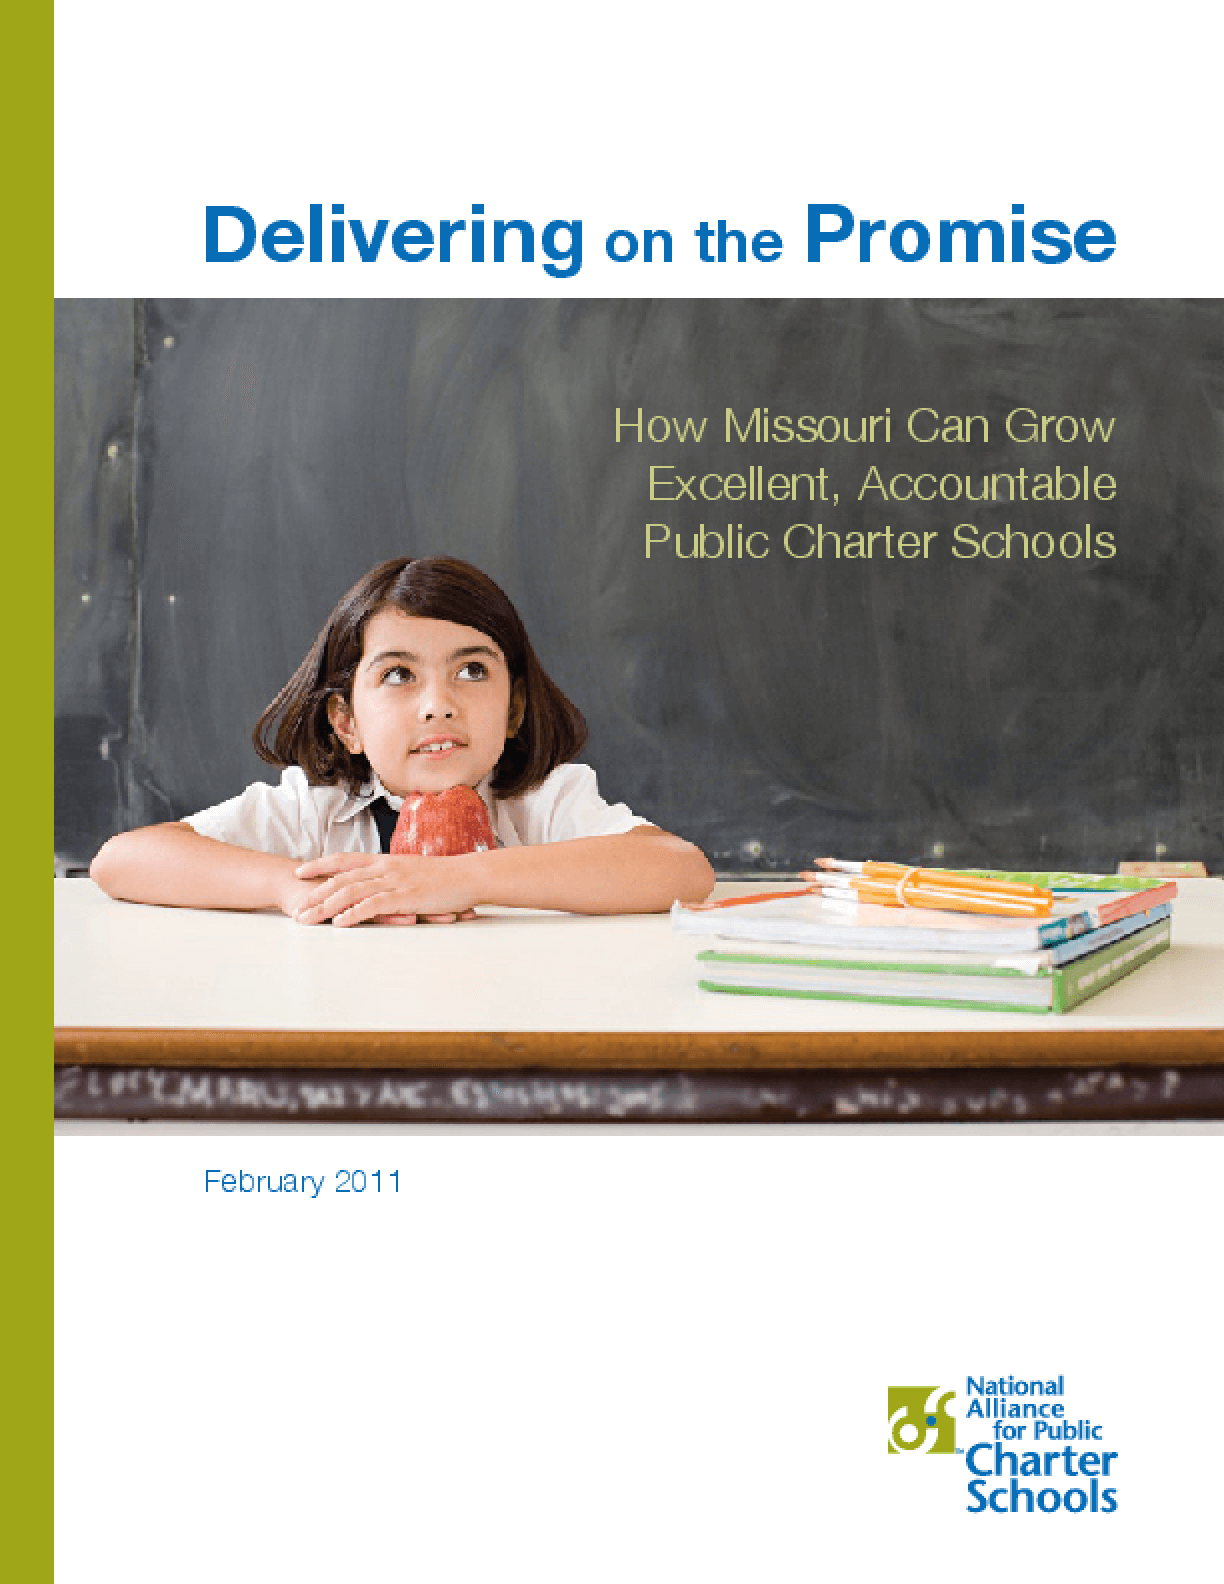 Delivering on the Promise: How Missouri Can Grow Excellent, Accountable Public Charter Schools